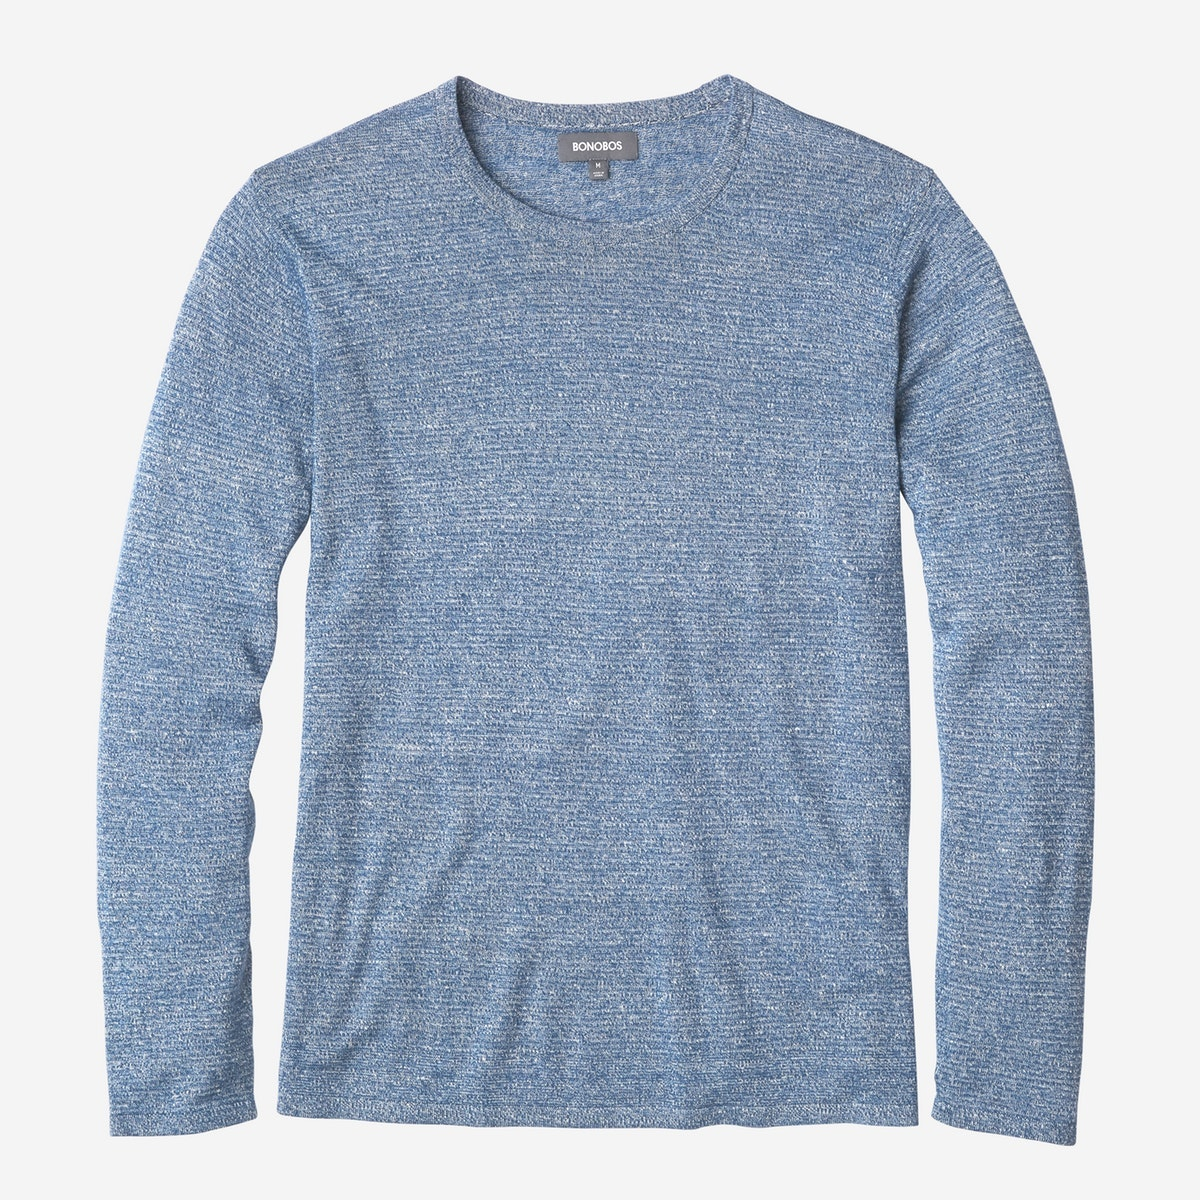 Cashmere Linen Long Sleeve Sweater Tee